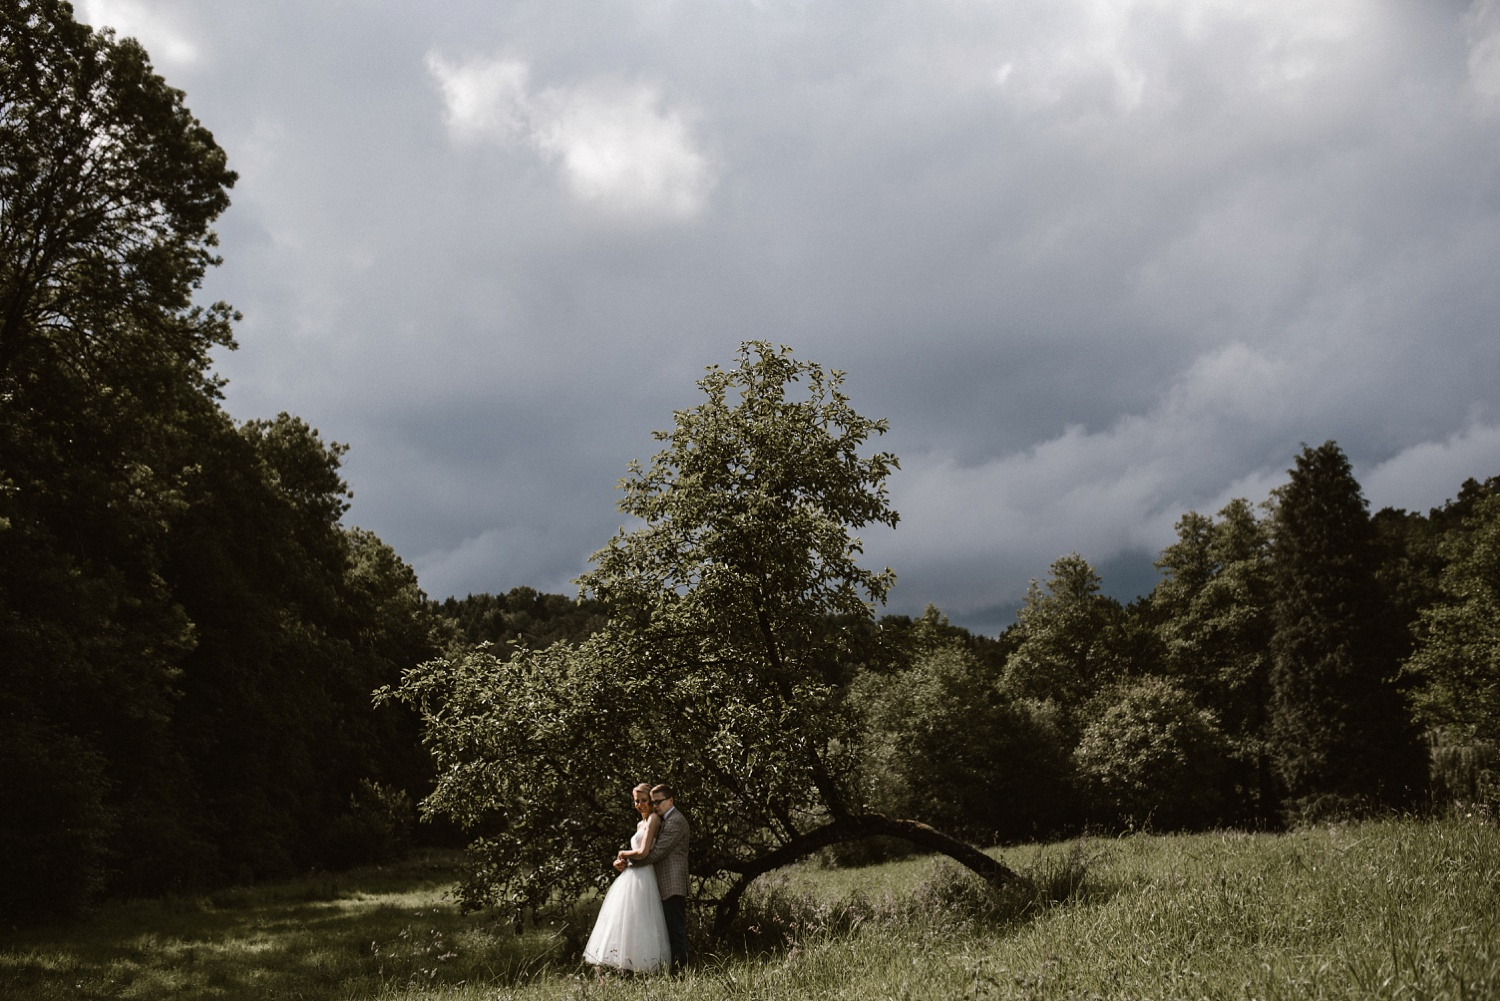 Wedding photographer Belgium Ardennes - Olle and Gosia_0050.jpg